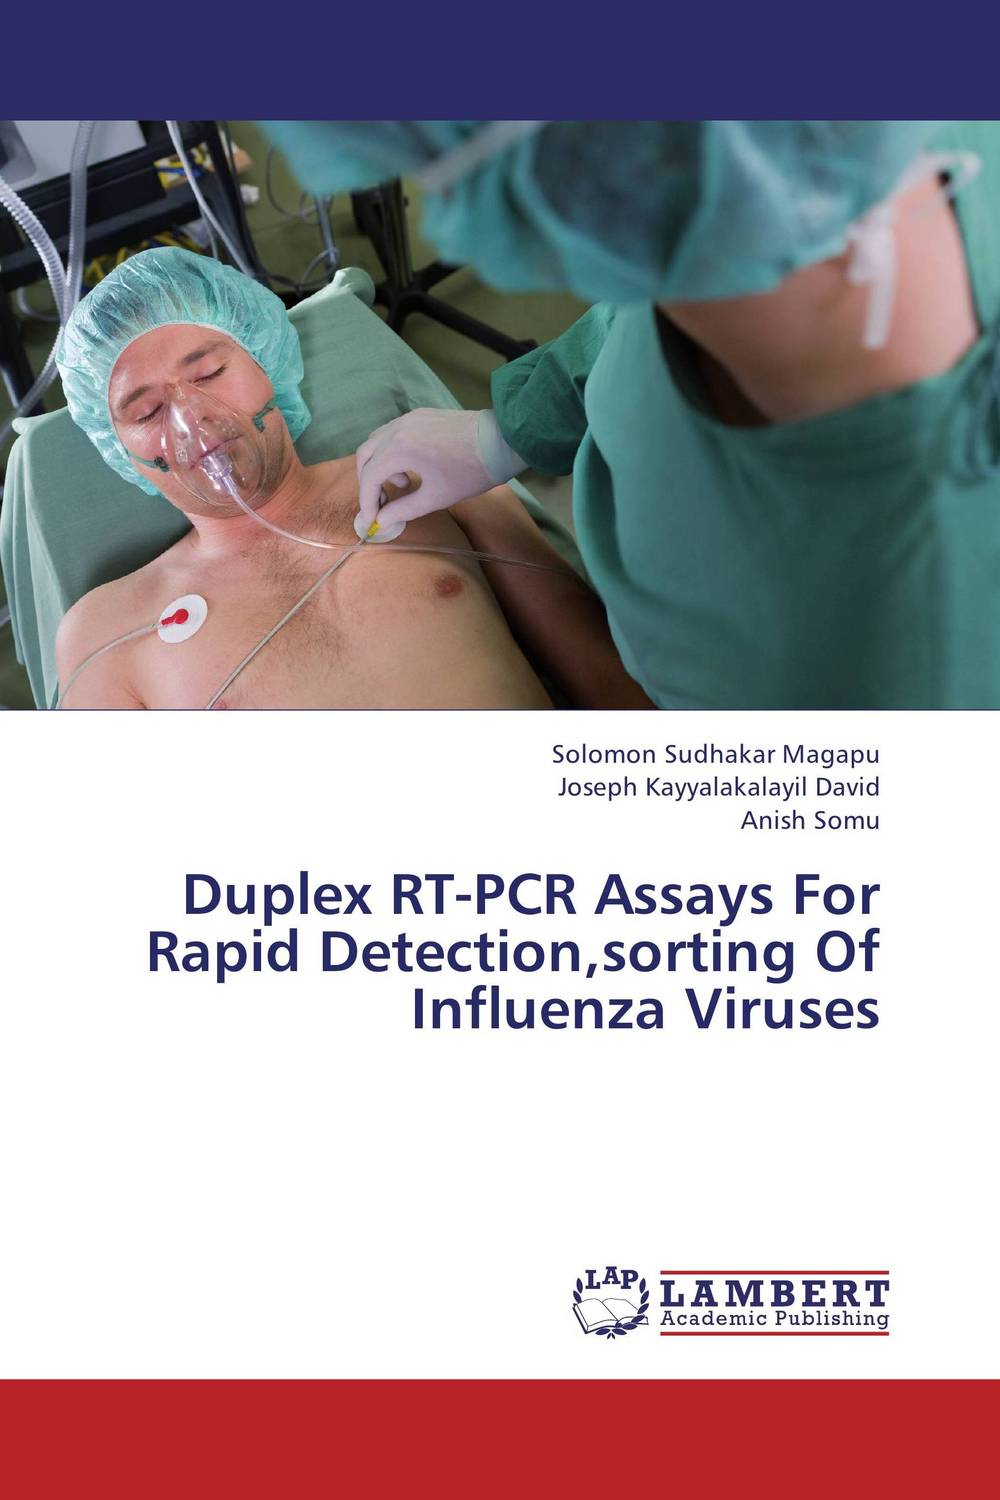 Duplex RT-PCR Assays For Rapid Detection,sorting Of Influenza Viruses nafisa farooq and nasir mehmood cicer arietinum and vigna mungo antifungal ca afp gene and assays